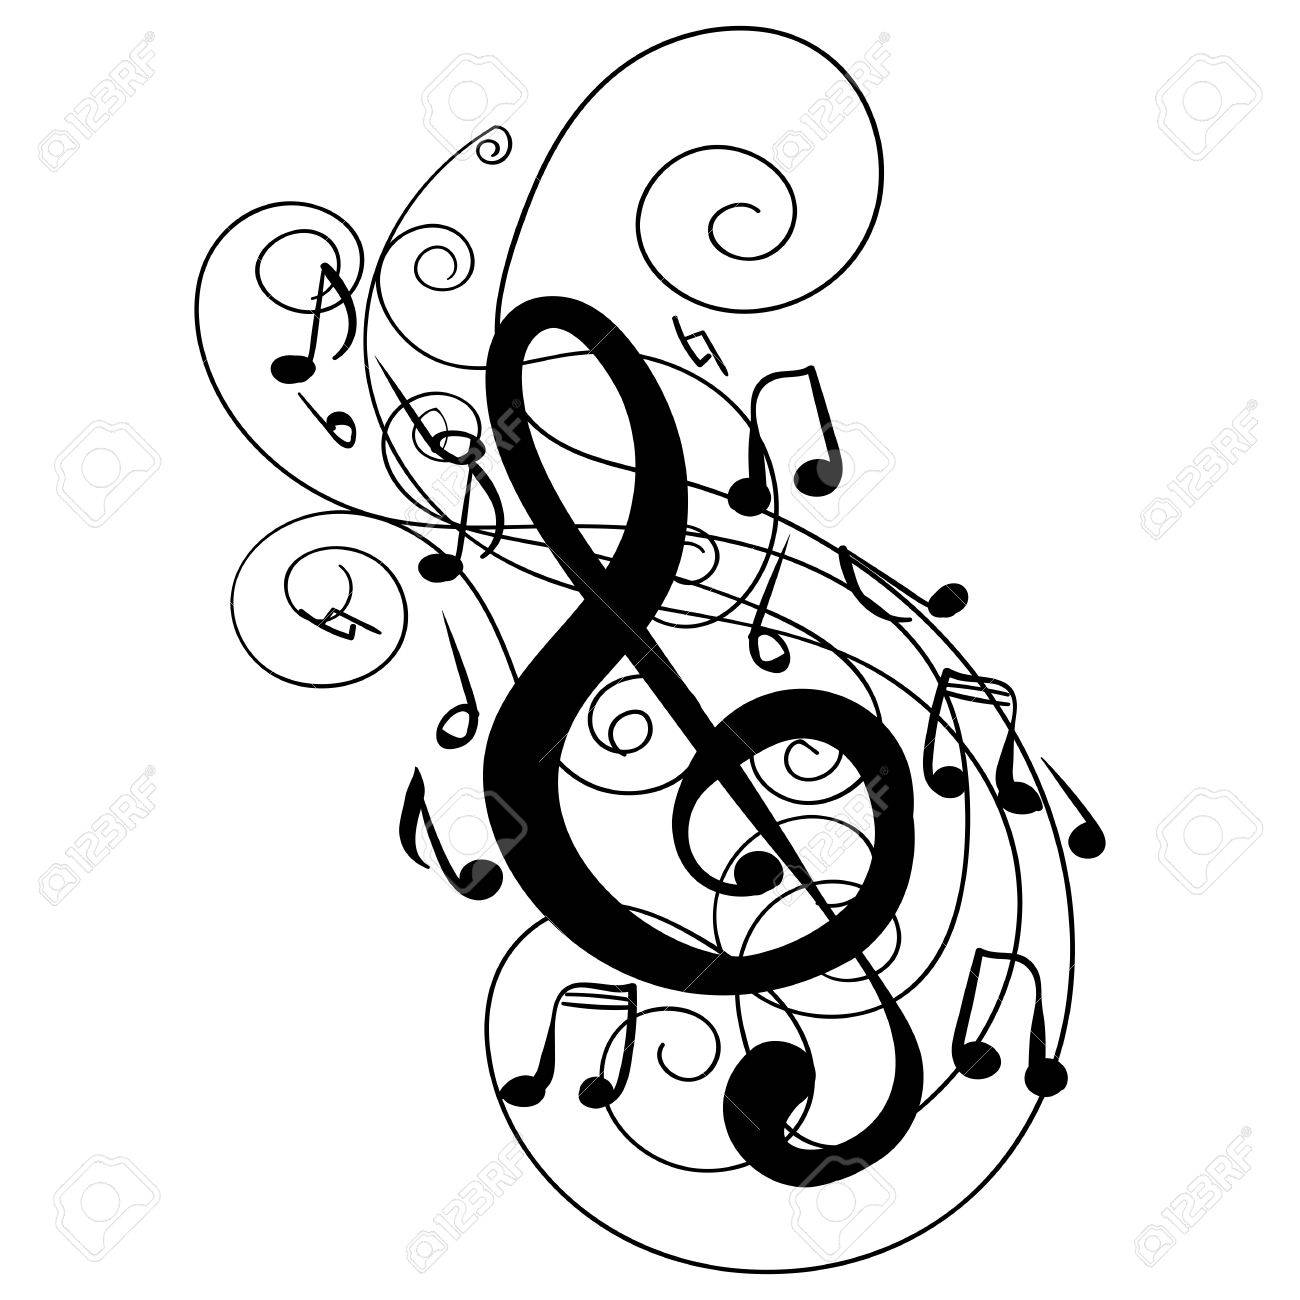 1300x1300 Swirl Whirl Treble Clef Key Hand Drawn Doodle Isolated Vector